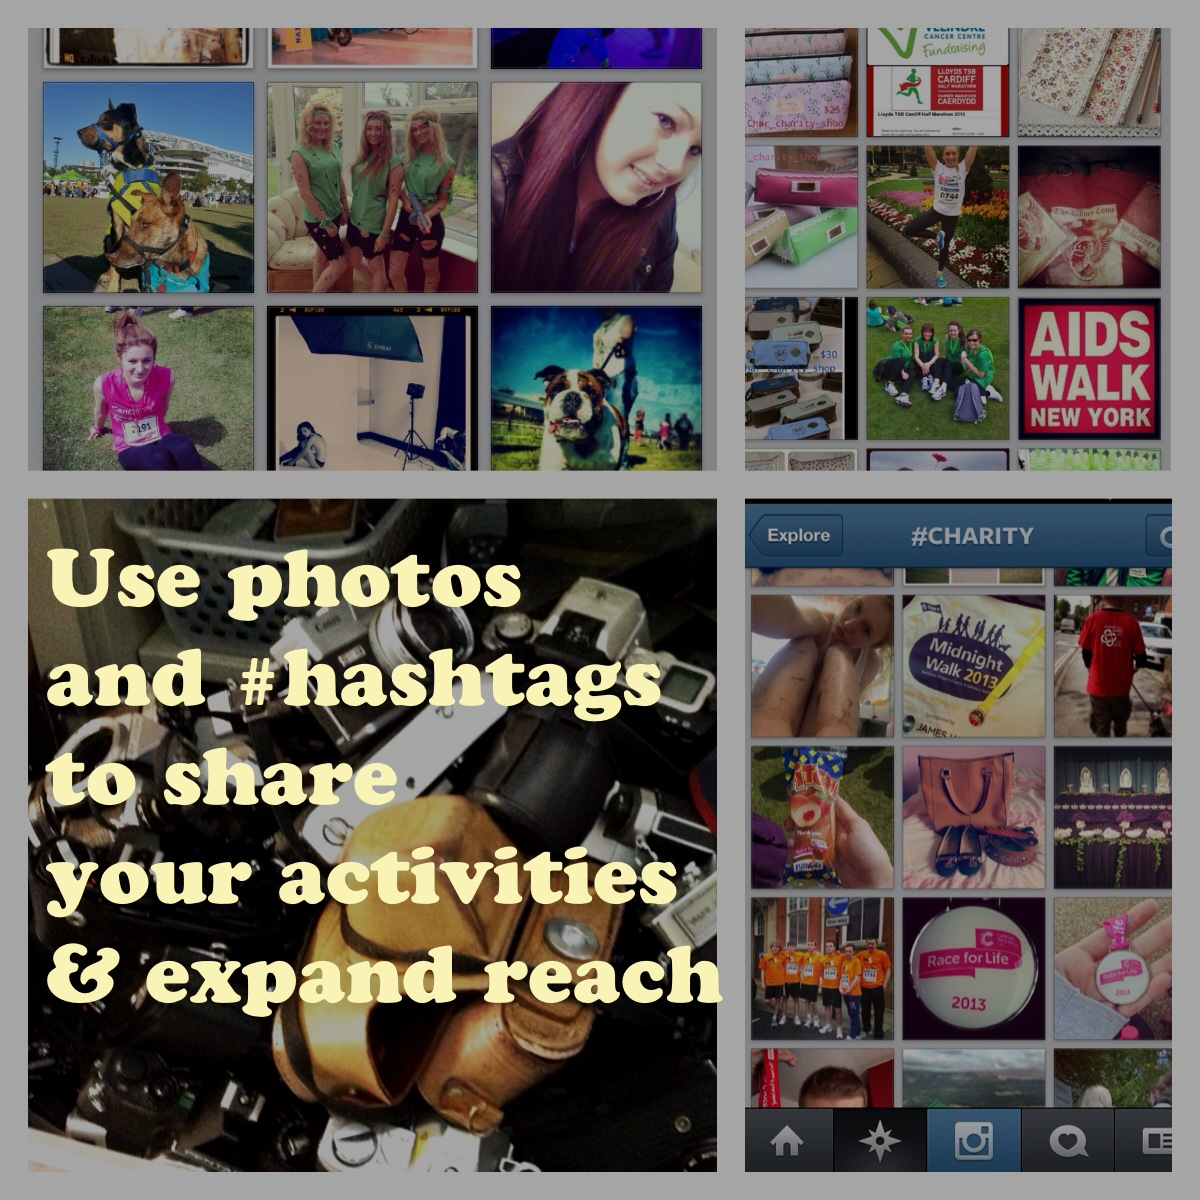 Samples from Instagram using OVER on using photos for Charity